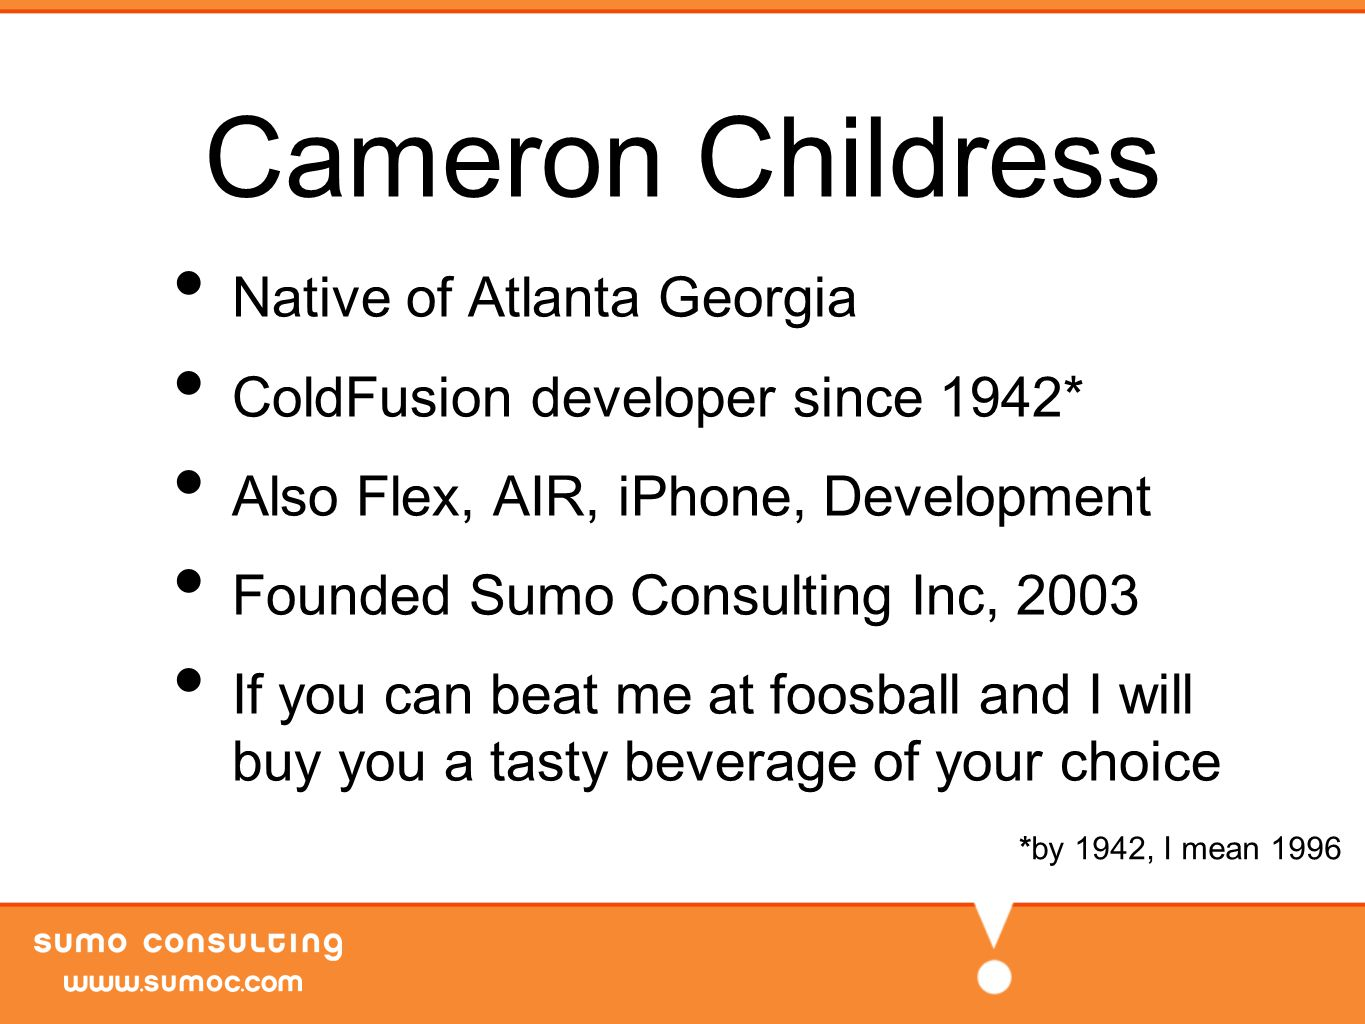 Cameron Childress Native of Atlanta Georgia ColdFusion developer since 1942* Also Flex, AIR, iPhone, Development Founded Sumo Consulting Inc, 2003 If you can beat me at foosball and I will buy you a tasty beverage of your choice *by 1942, I mean 1996